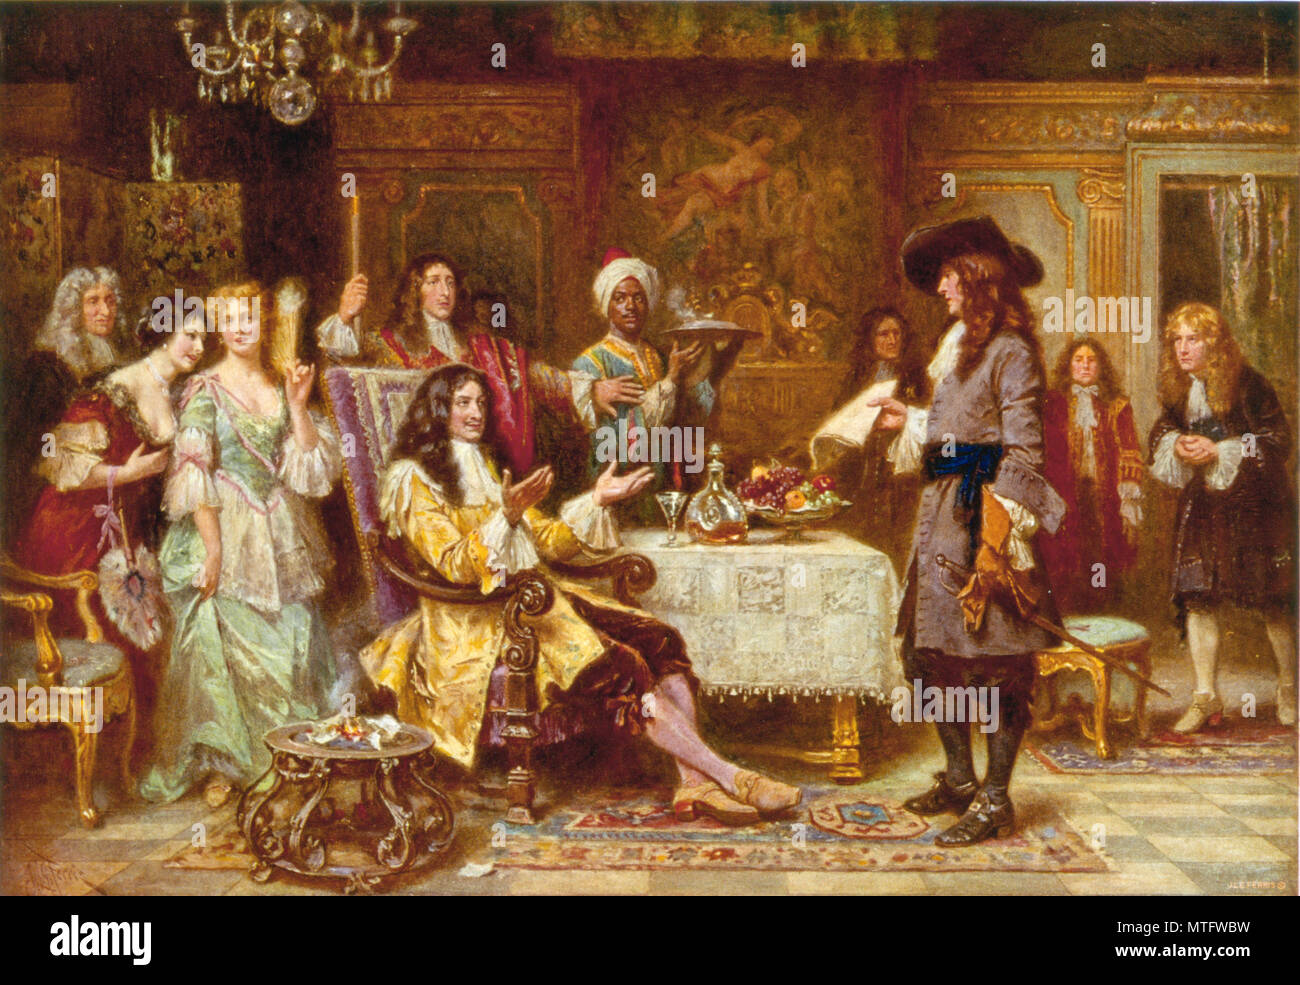 The Birth of Pennsylvania, 1680, by Jean Leon Gerome Ferris. William Penn, holding paper, standing and facing King Charles II, in the King's breakfast chamber at Whitehall. Stock Photo